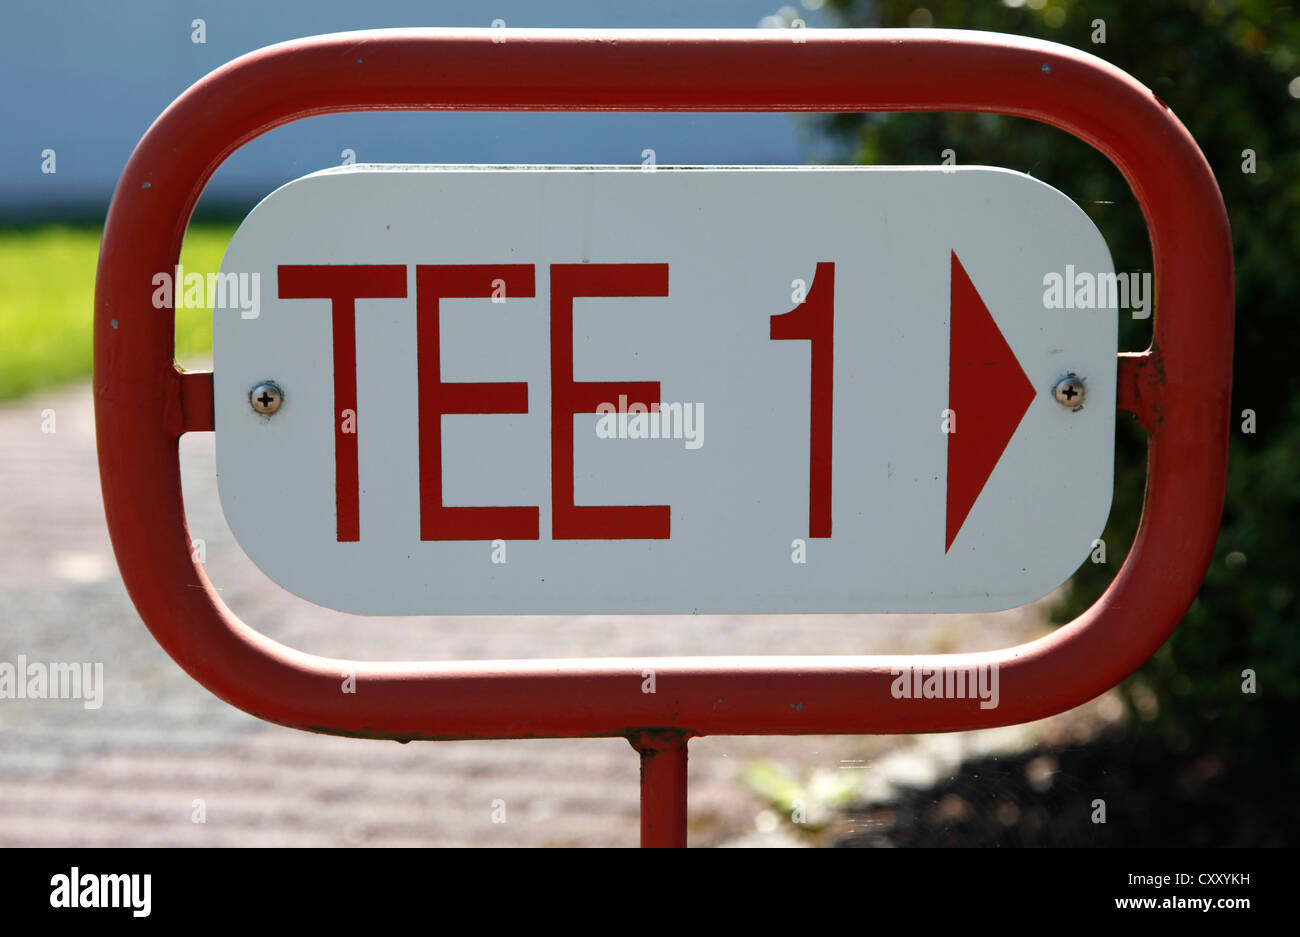 Signpost at a golf course, way to tee 1. - Stock Image